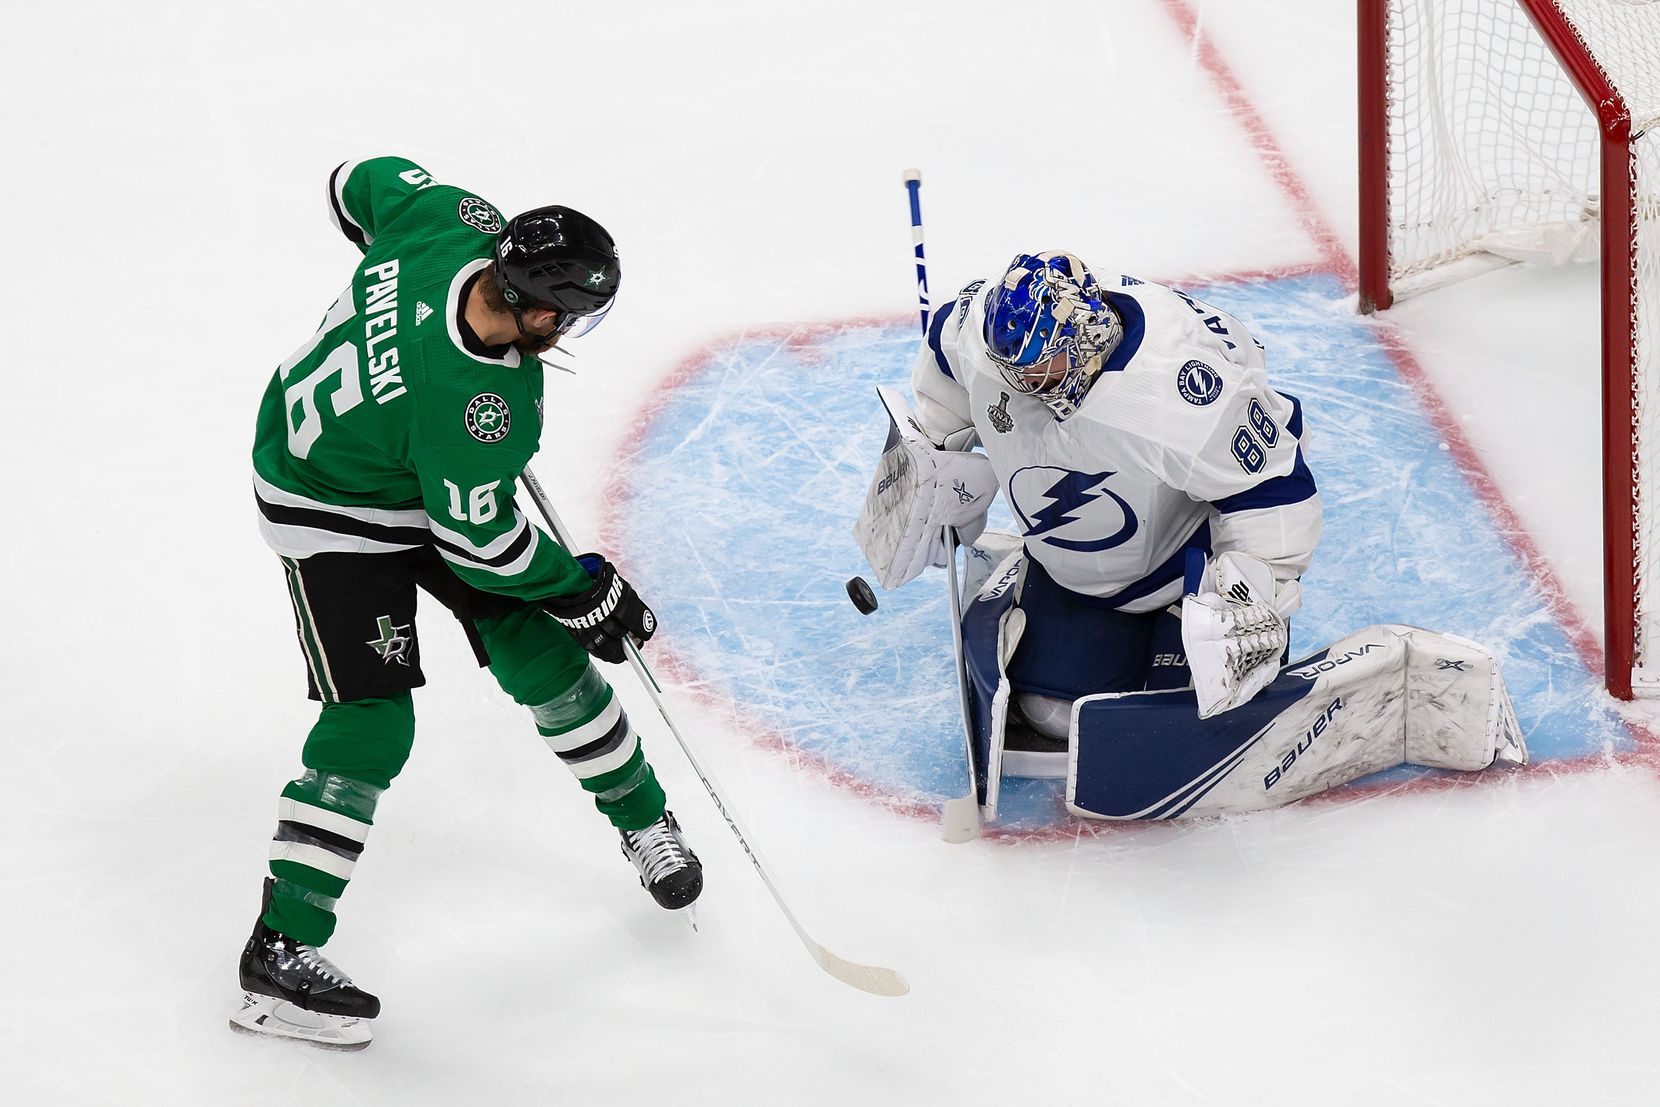 Joe Pavelski (16) of the Dallas Stars takes a shot on goaltender Andrei Vasilevskiy (88) of the Tampa Bay Lightning during Game Three of the Stanley Cup Final at Rogers Place in Edmonton, Alberta, Canada on Wednesday, September 23, 2020. (Codie McLachlan/Special Contributor)